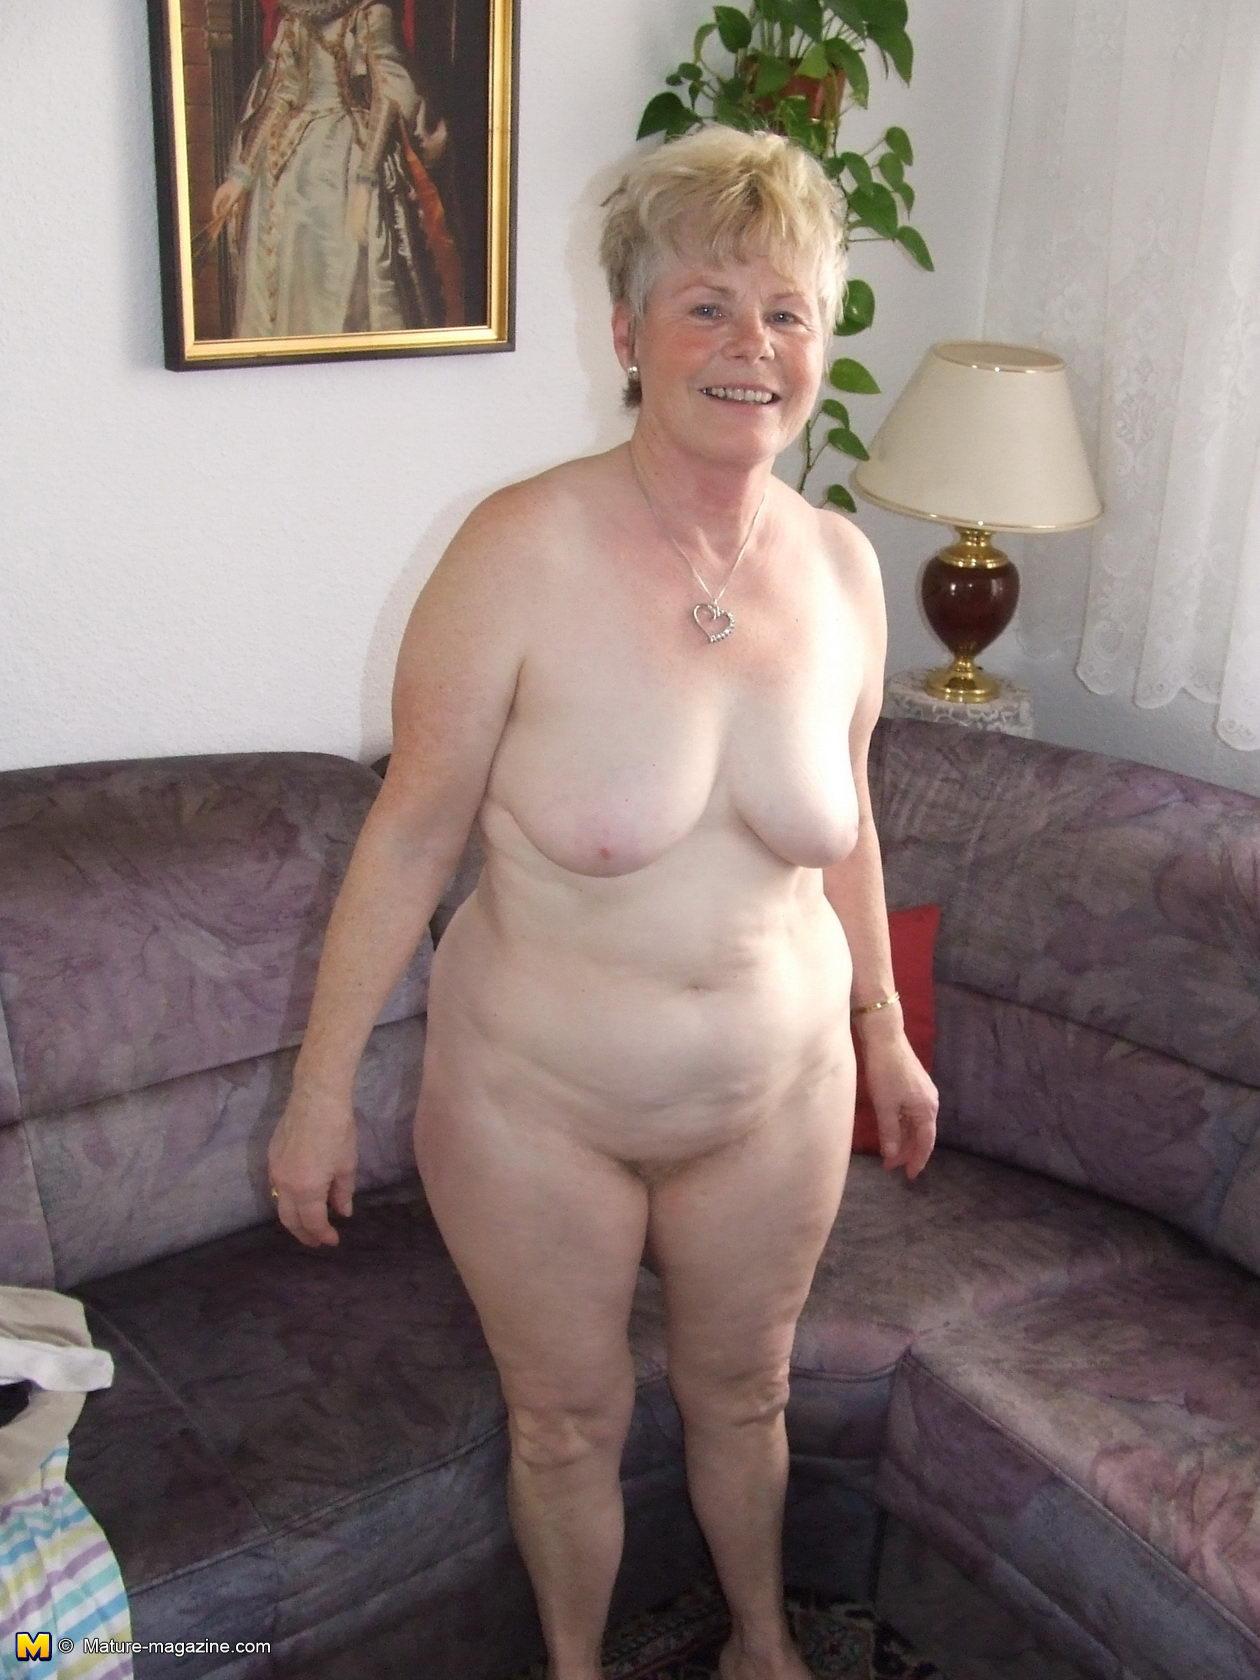 Mature women body pictures